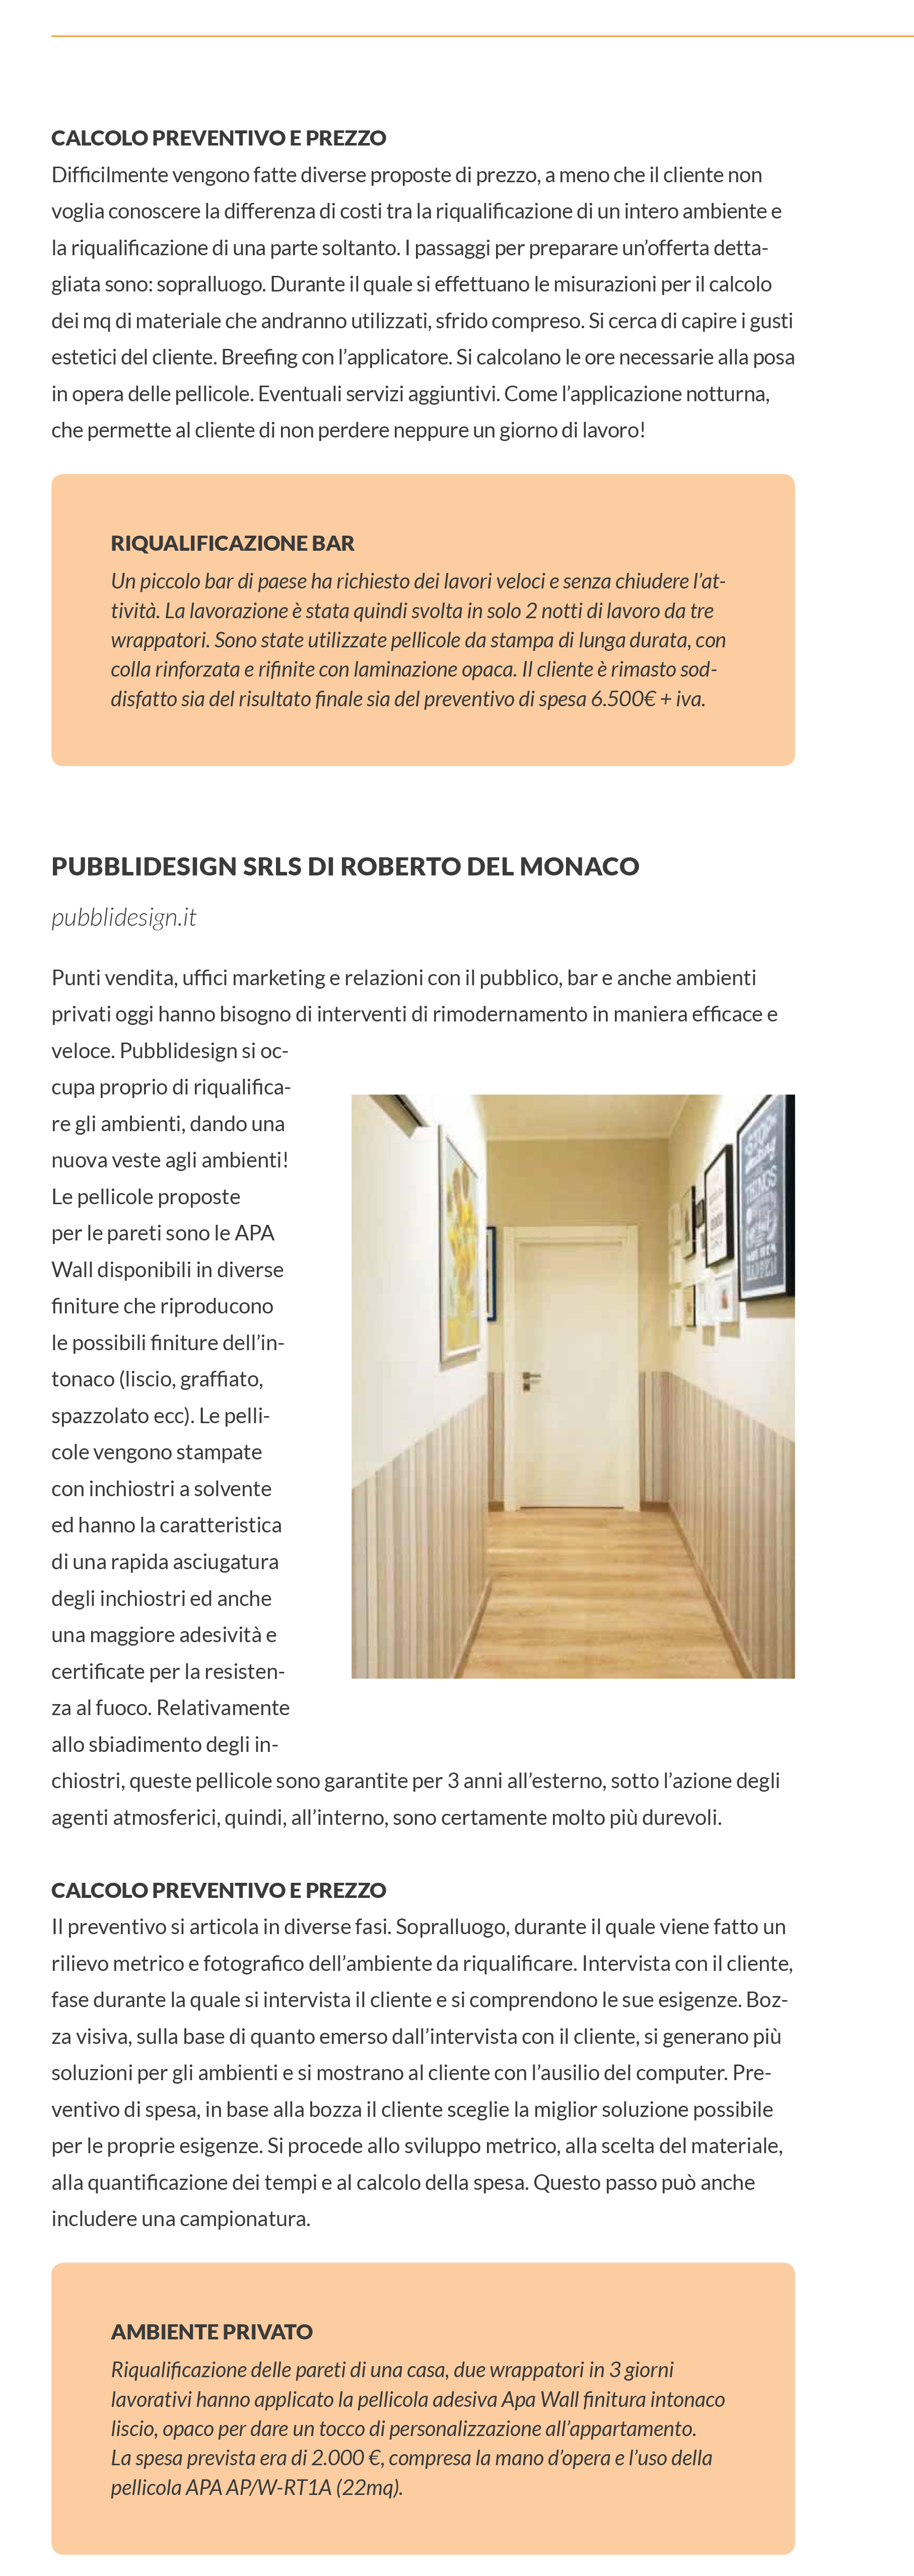 interior design, carta da parati, riqualificazione interni